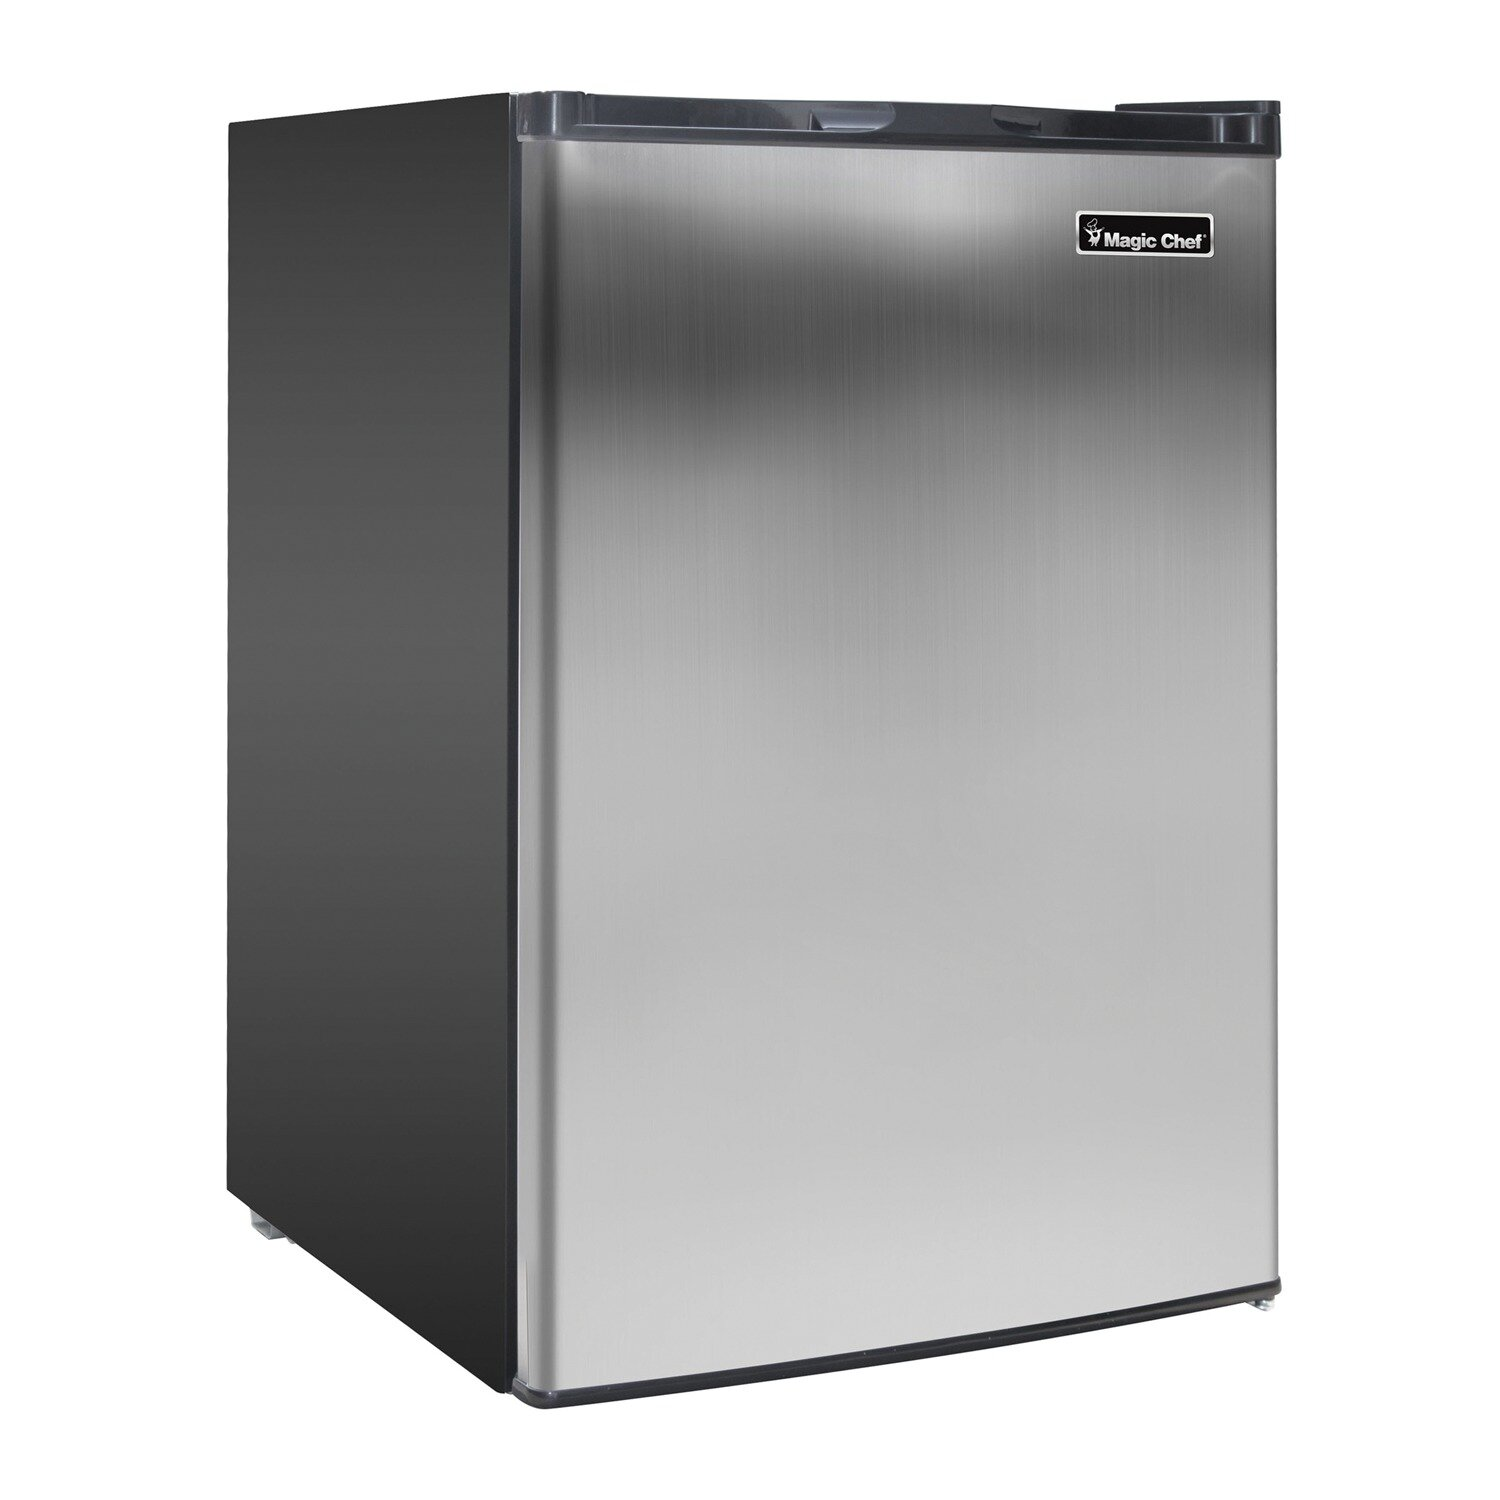 Magic Chef 3 Cu Ft Upright Freezer Reviews Wayfair